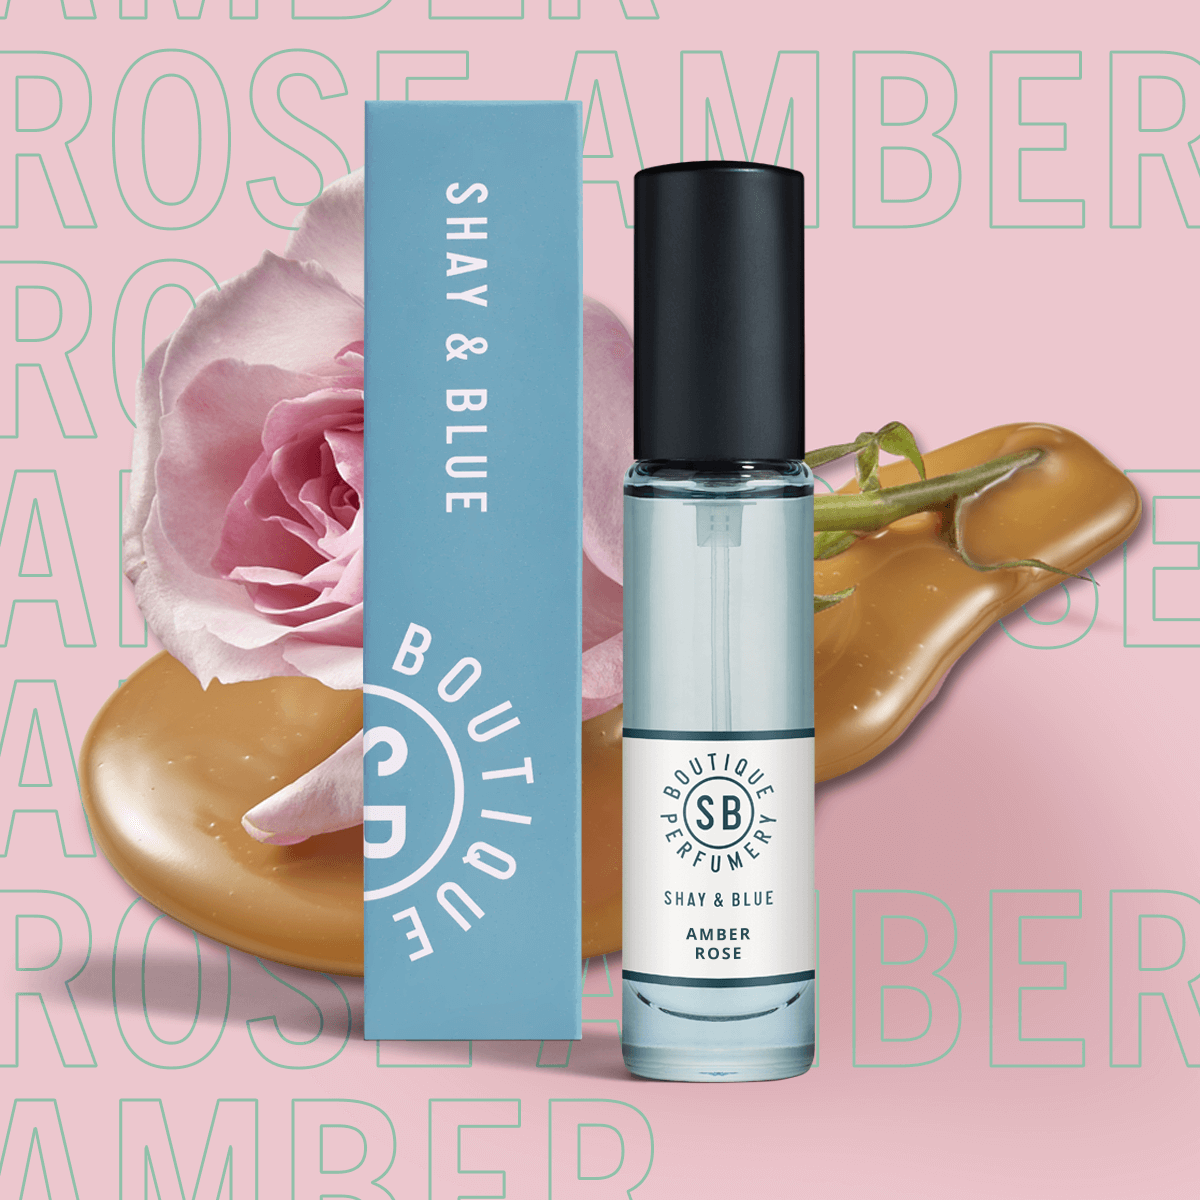 Amber Rose Fragrance 10ml | New season May Rose is blended with white amber and sweet creamy notes. | Clean All Gender Fragrance | Shay & Blue